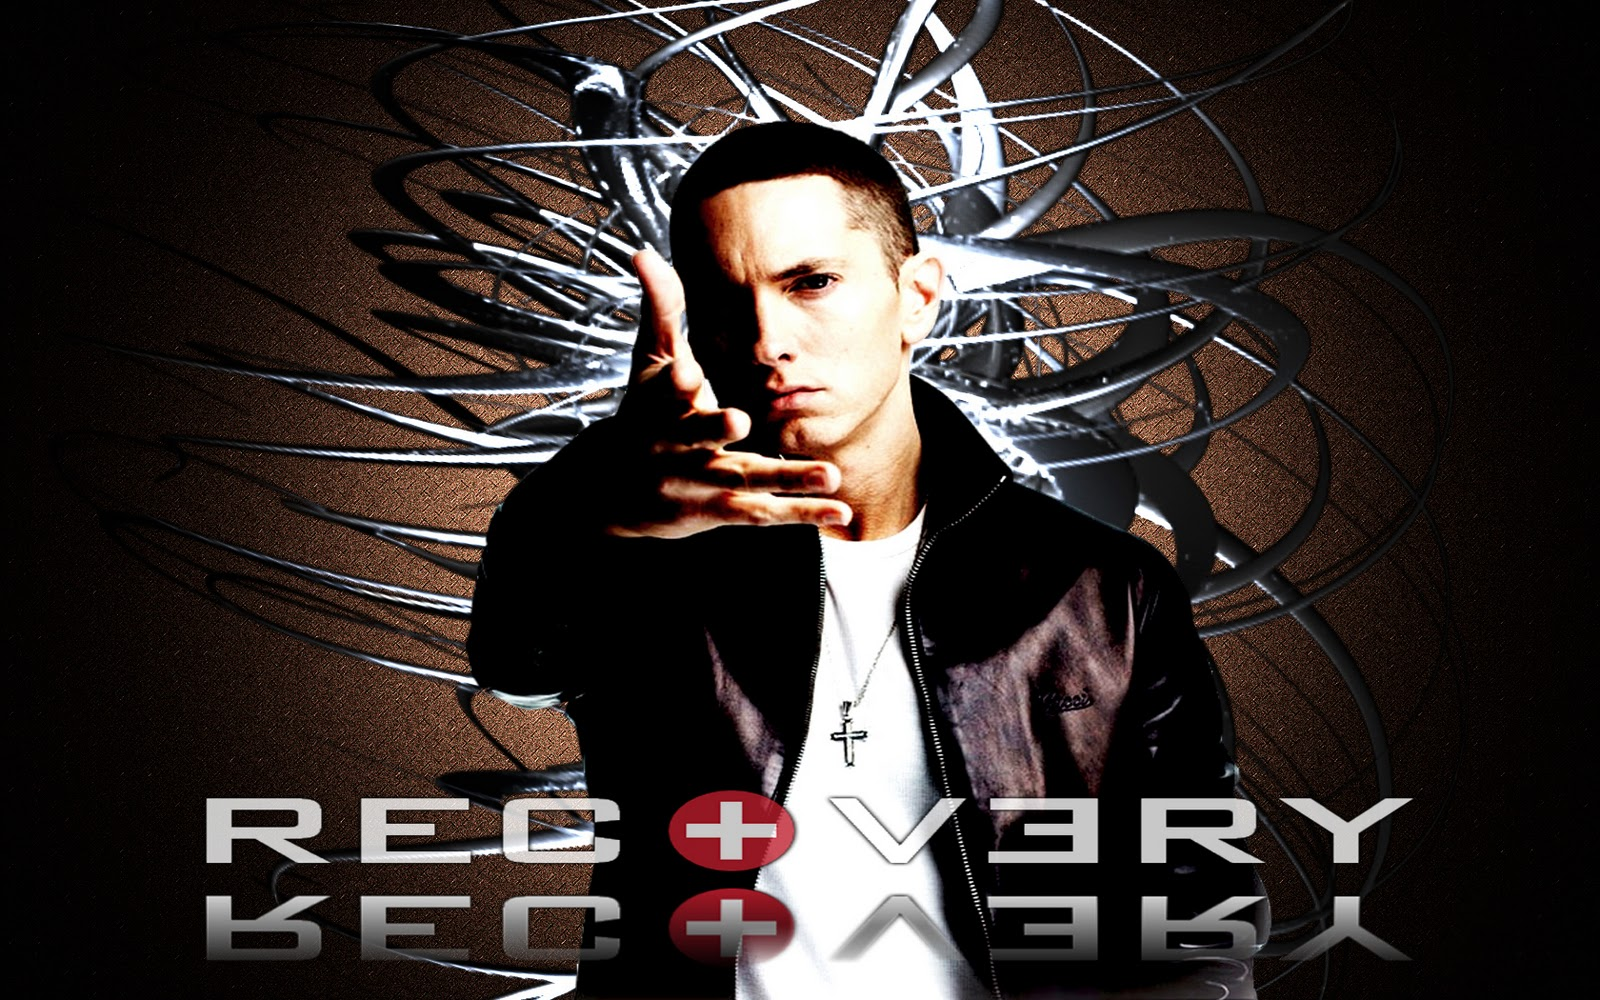 http://4.bp.blogspot.com/-7iA-nKsPFIU/T5jm2bFLkpI/AAAAAAAABWY/2Nb-FAge6AY/s1600/The-best-top-desktop-eminem-wallpapers-16.jpg